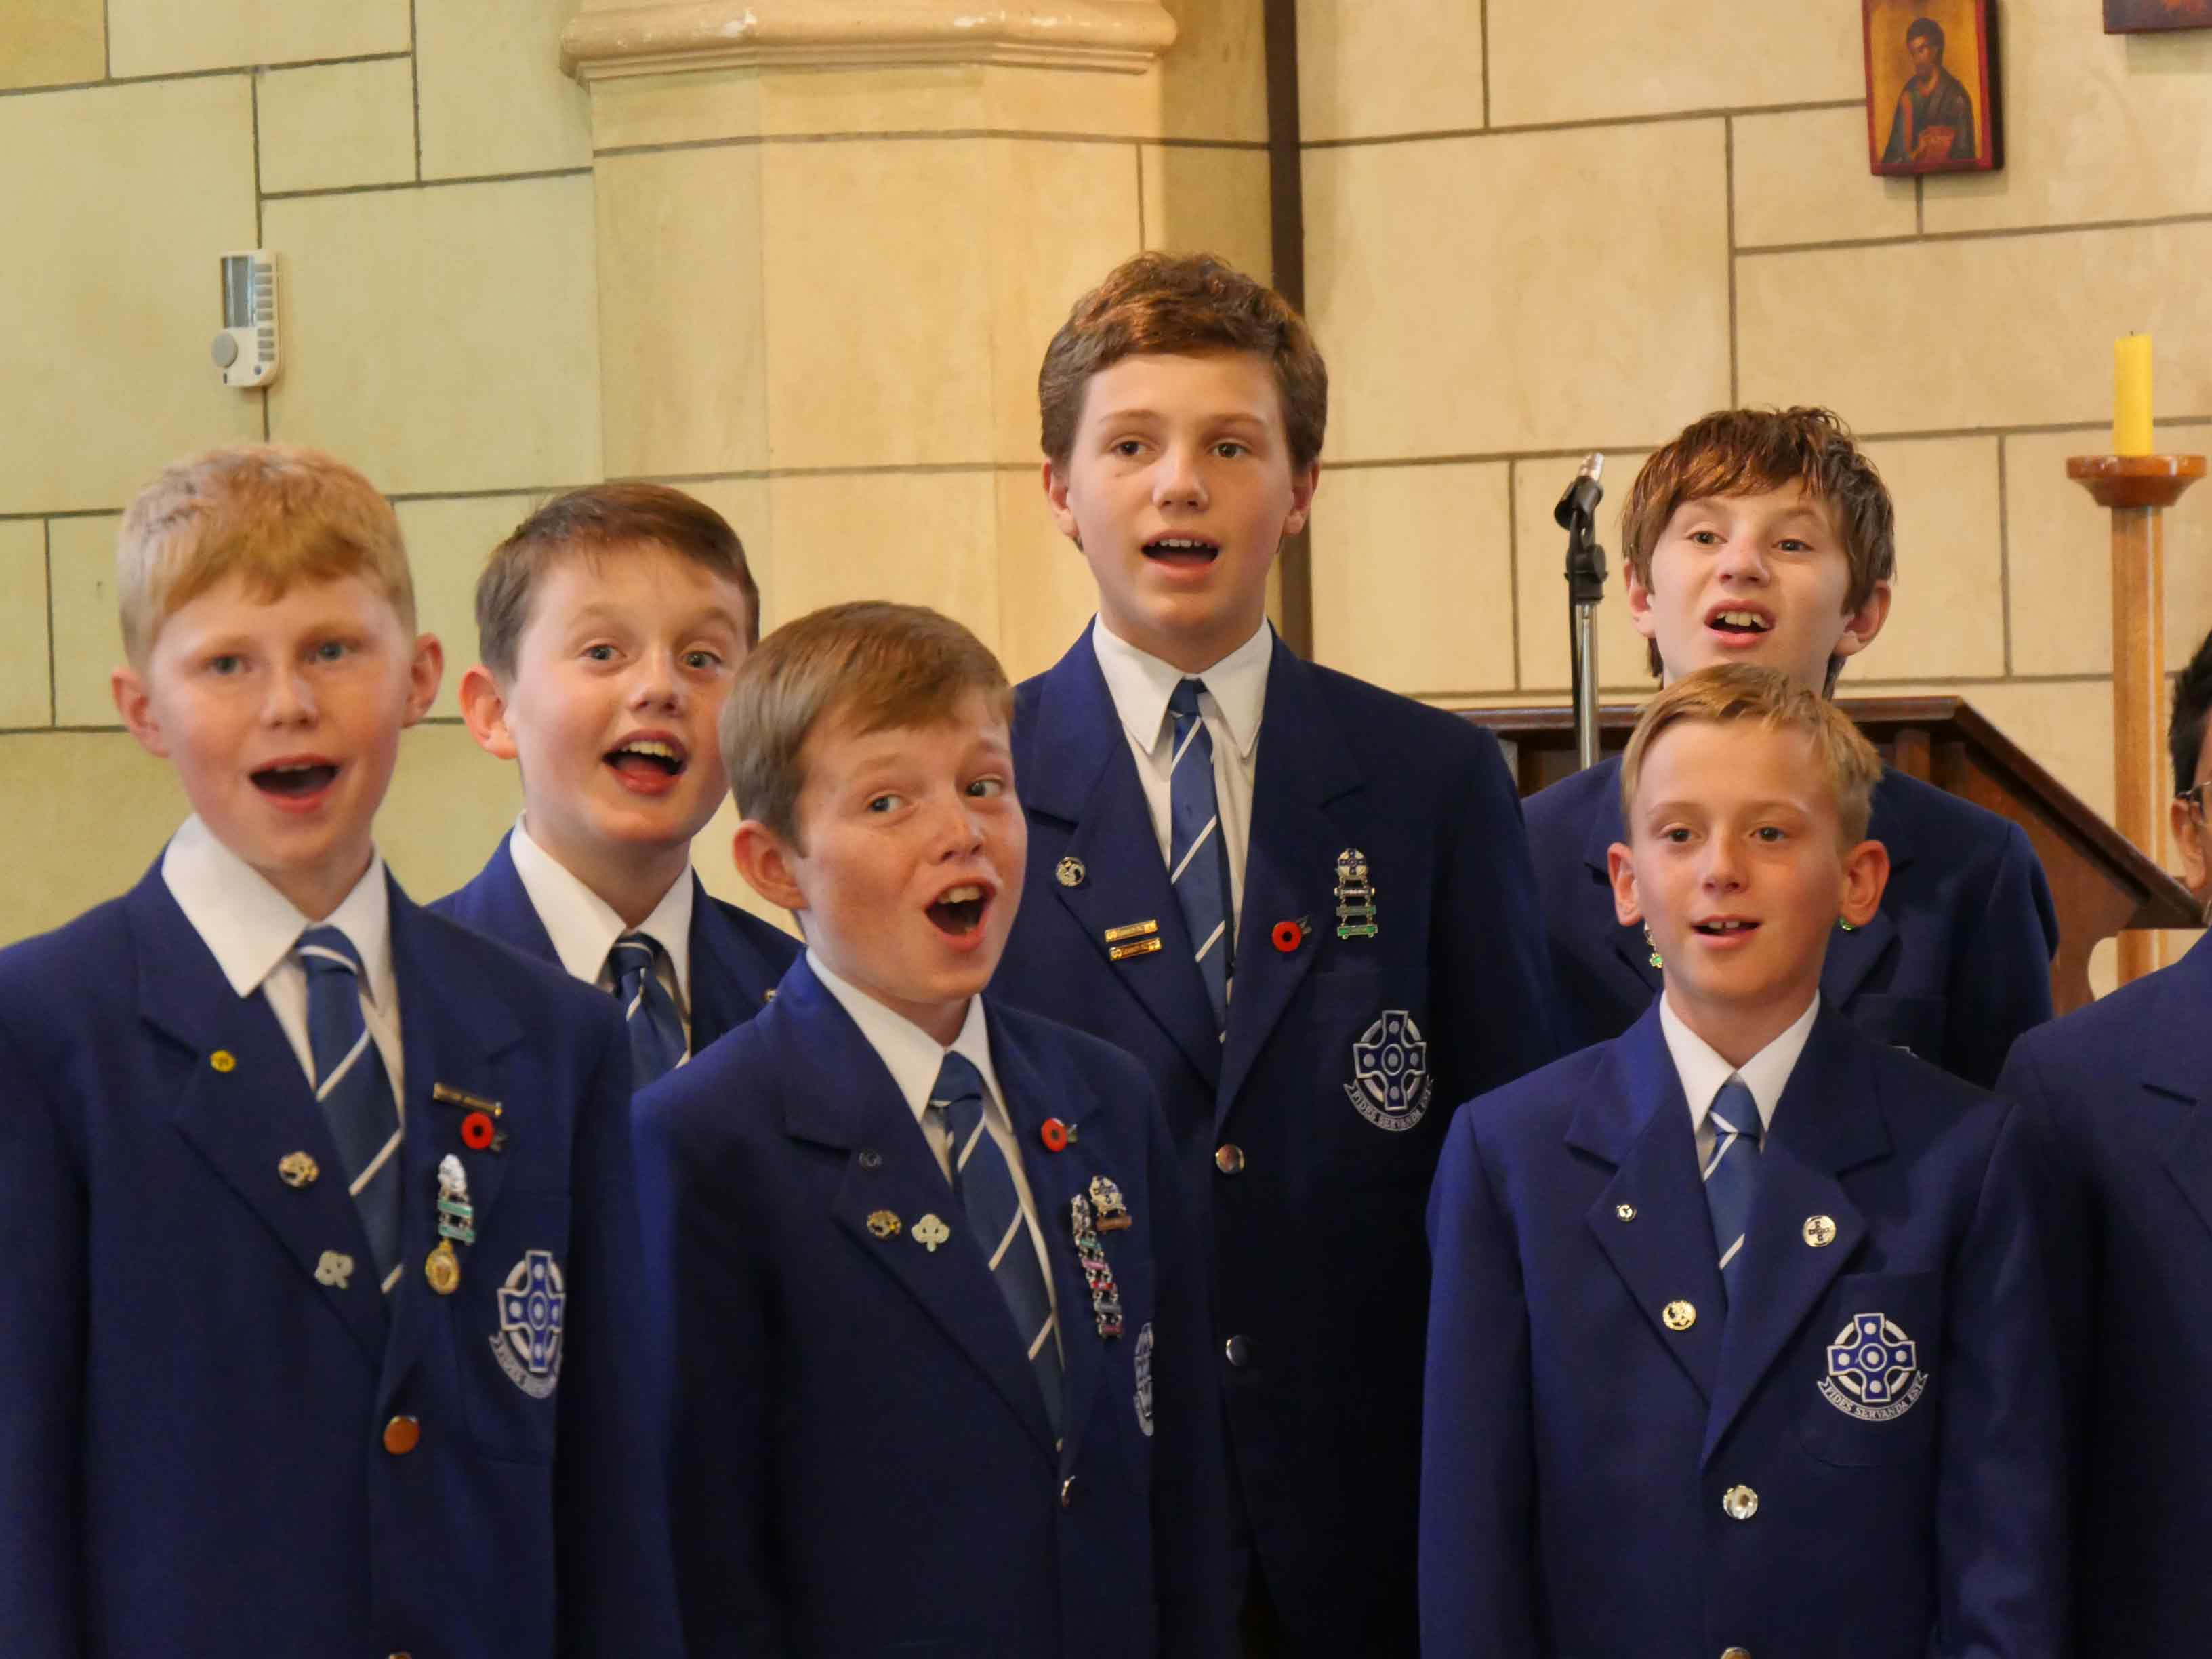 Saint-Kentigern-Boys'-School-Choir-Senior-School.jpg